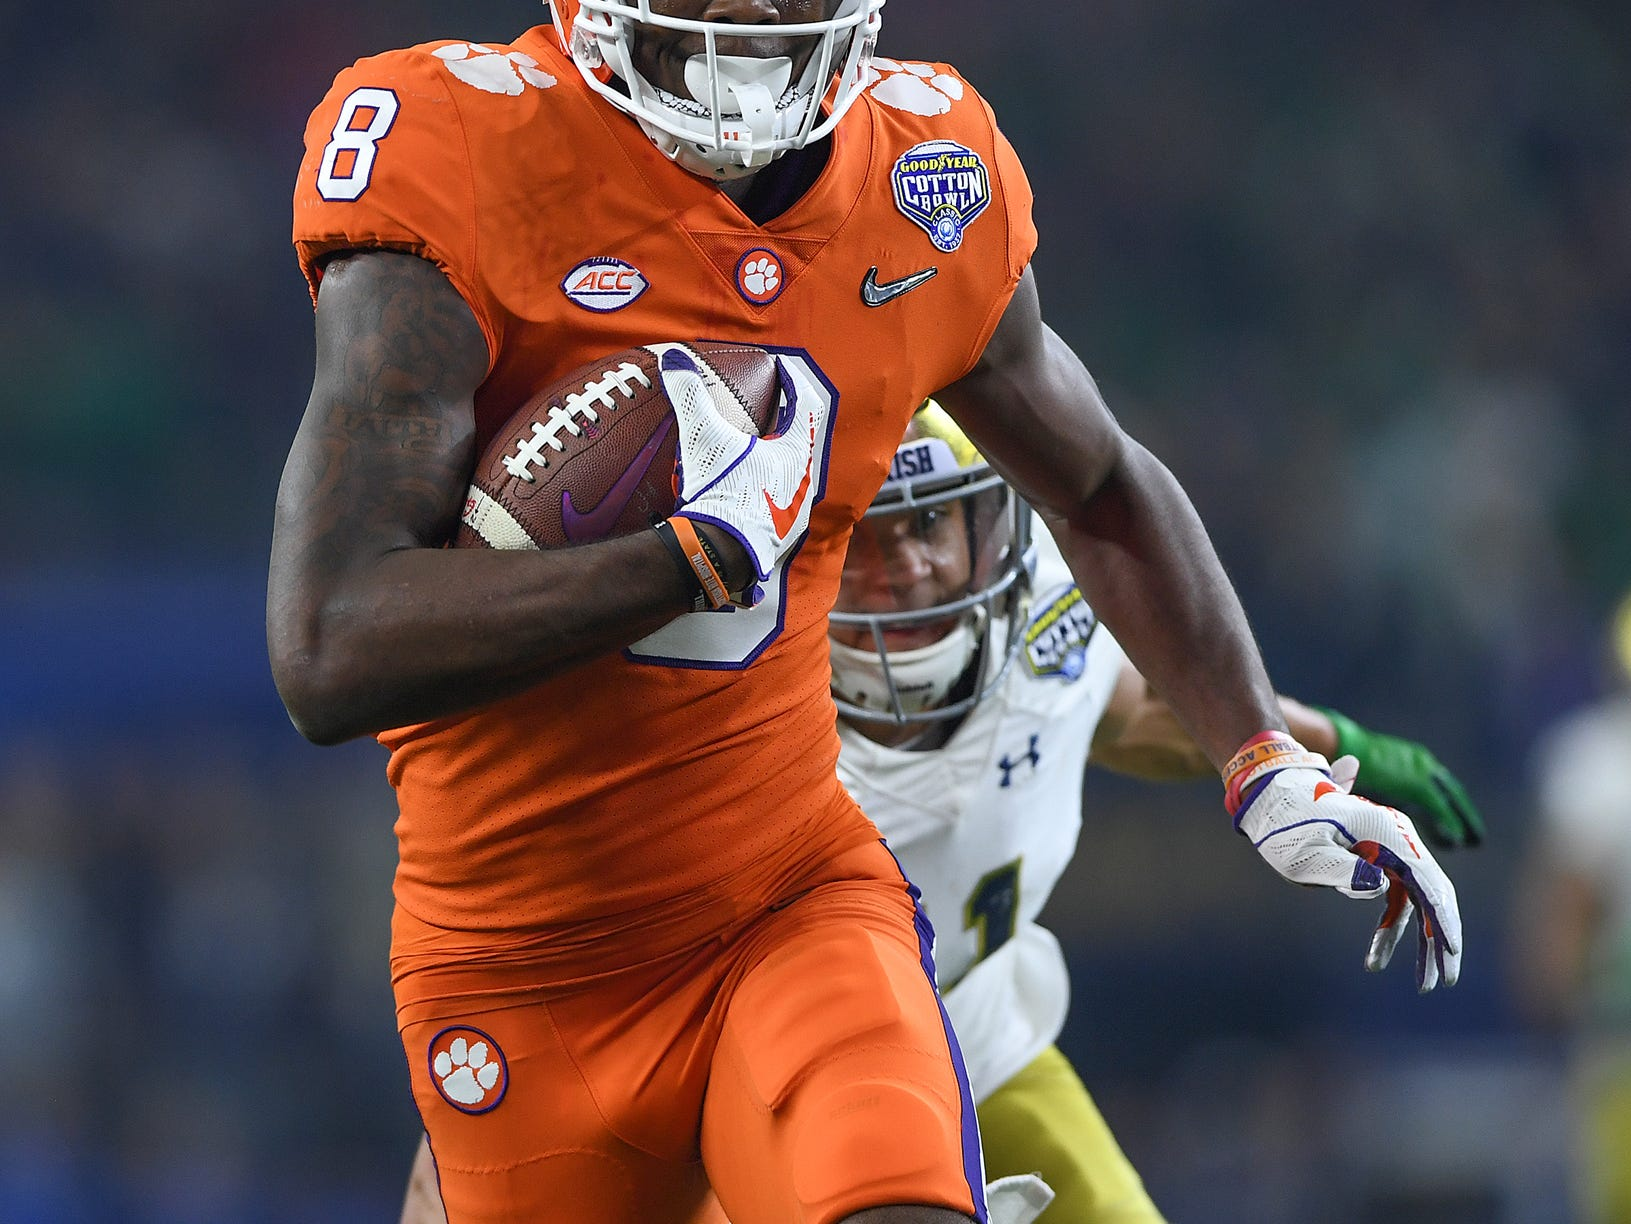 Clemson wide receiver Justyn Ross (8) catches a 42 yard TD against Notre Dame during the 2nd quarter of the Goodyear Cotton Bowl at AT&T stadium in Arlington, TX Saturday, December 29, 2018.